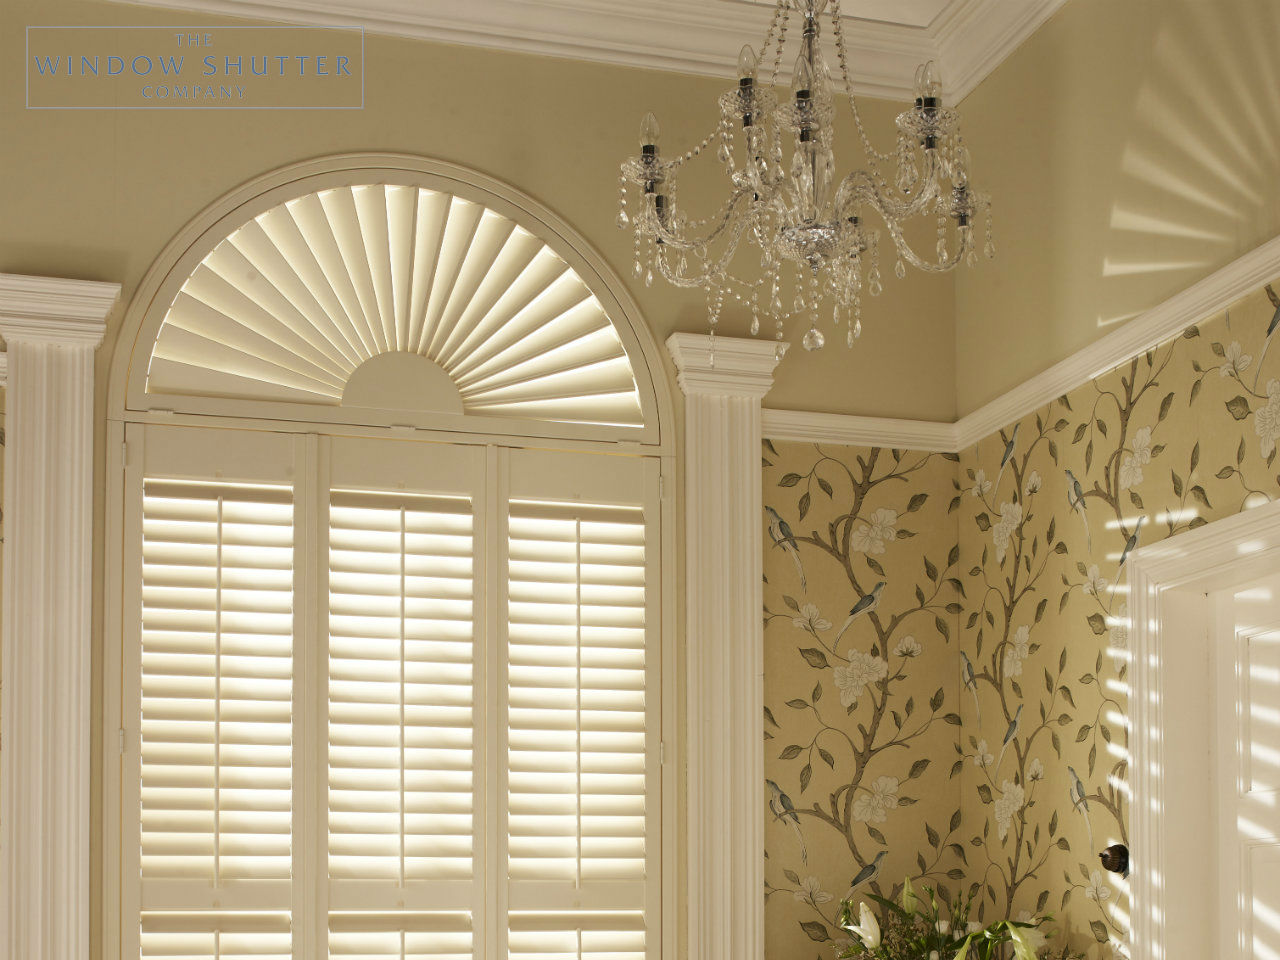 Window Shutters Frequently Asked Questions